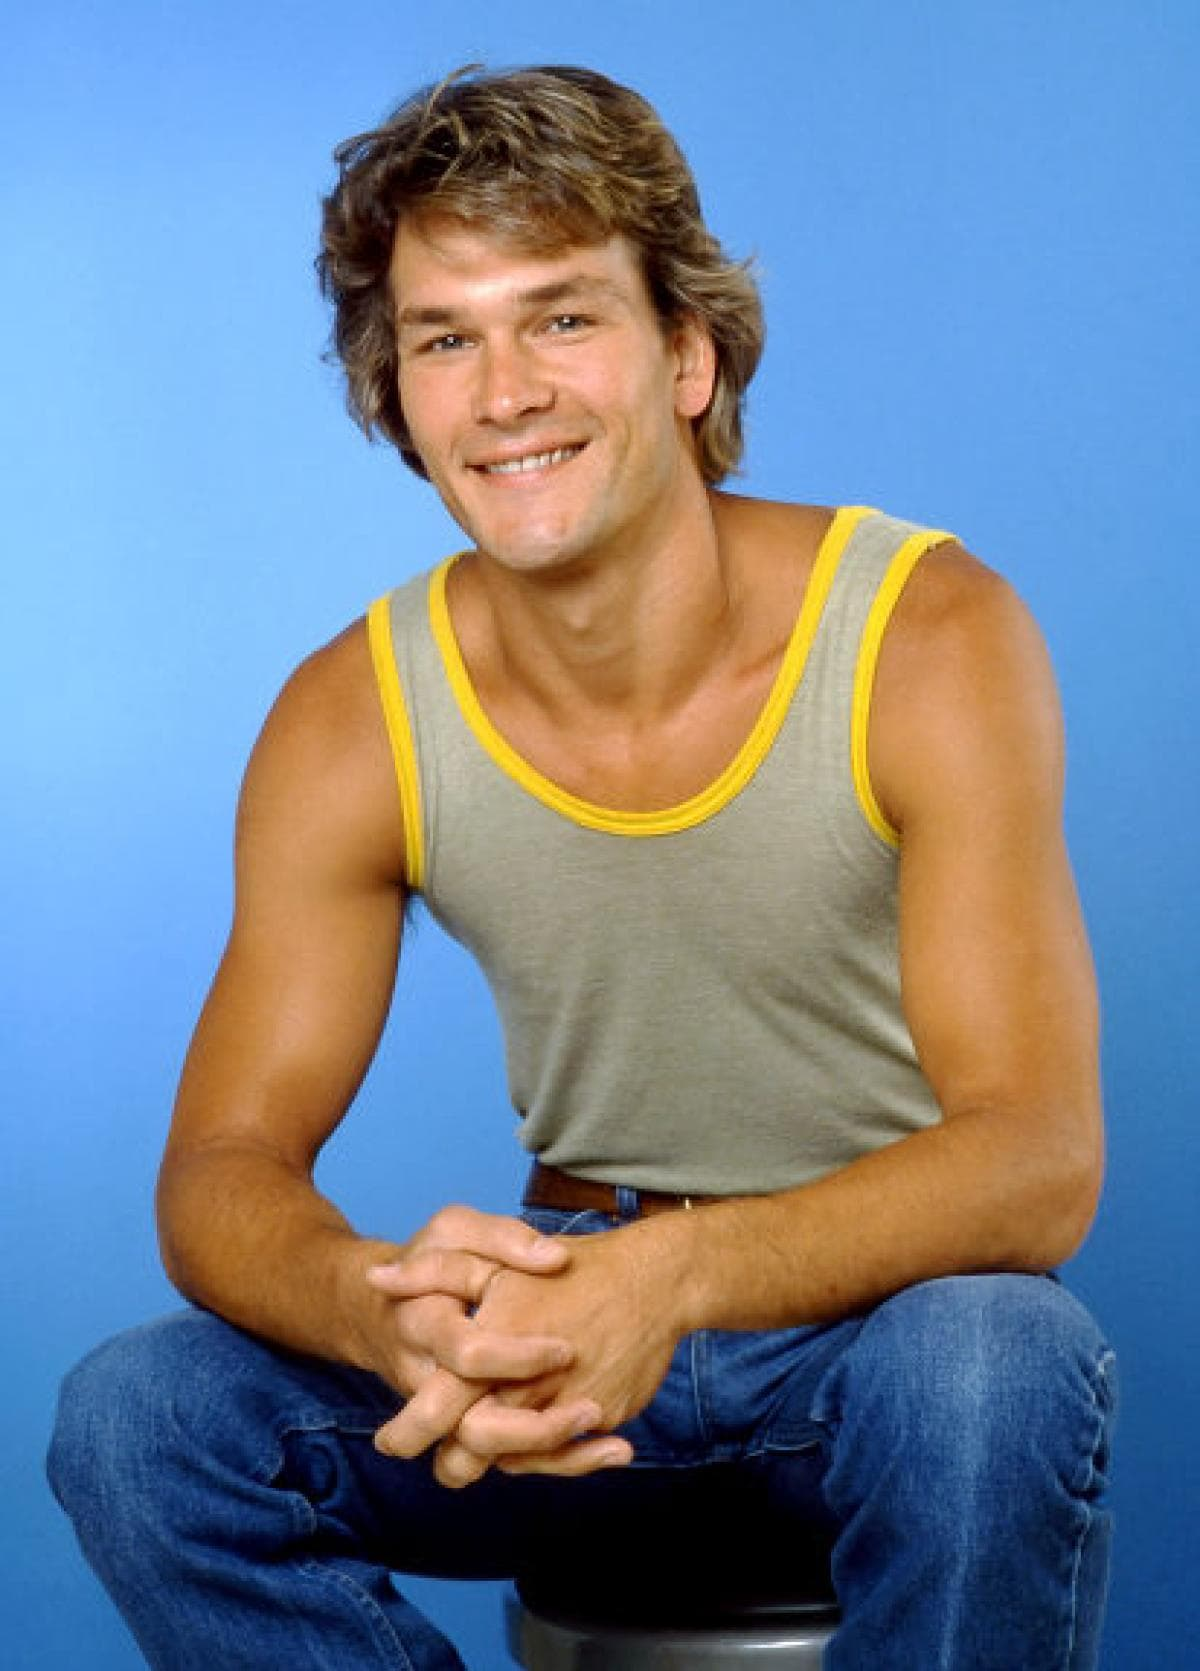 Patrick Swayze Wallpapers hd